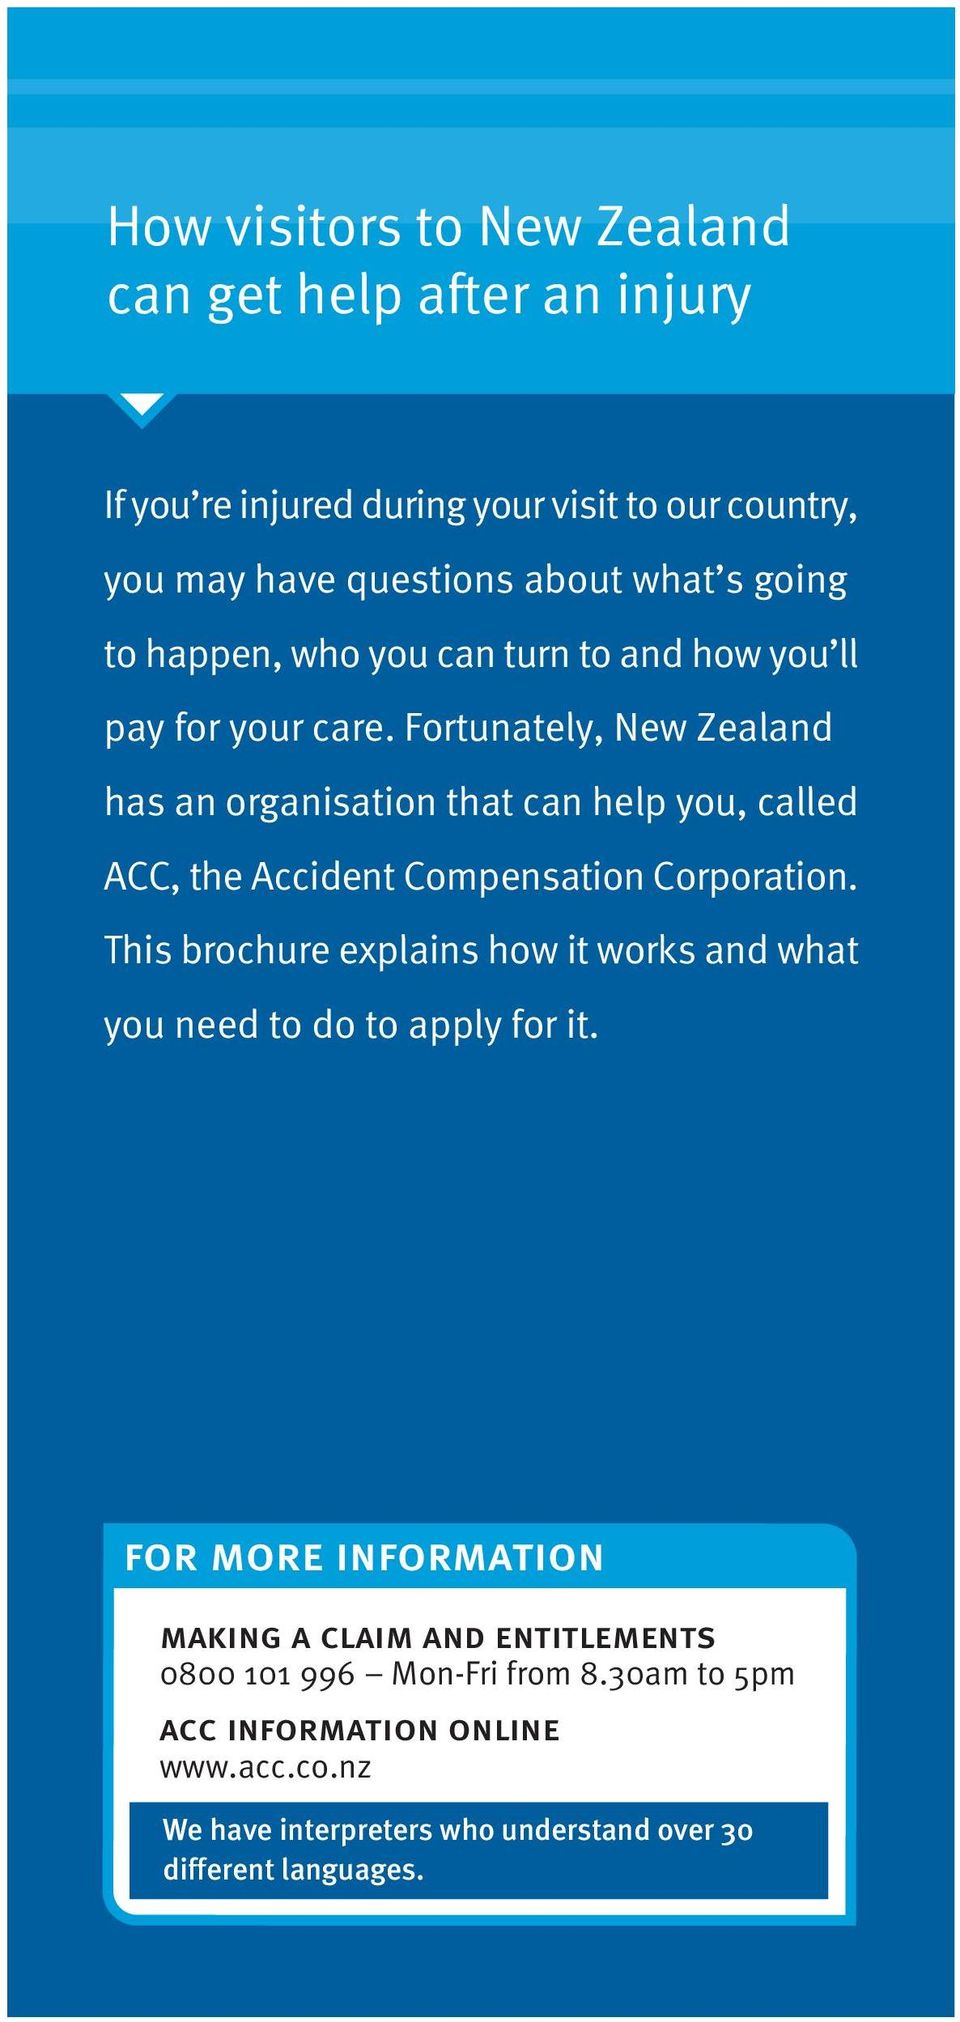 Fortunately, New Zealand has an organisation that can help you, called ACC, the Accident Compensation Corporation.